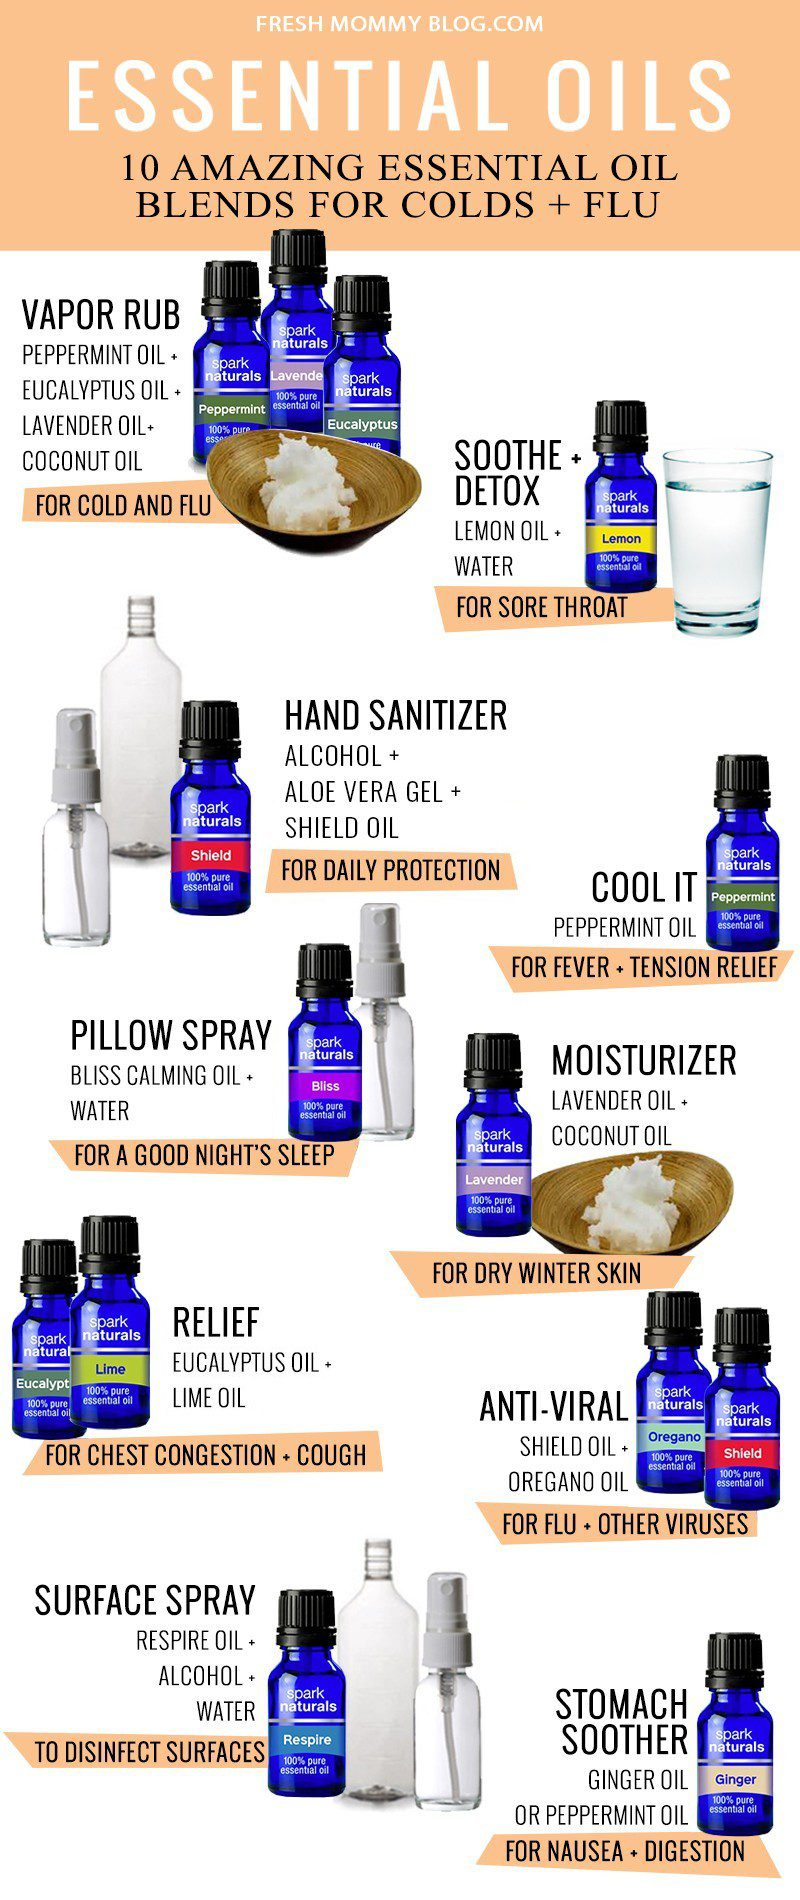 10 Amazing Essential Oil Blends For Colds And Flu Updated 2020 Fresh Mommy Blog